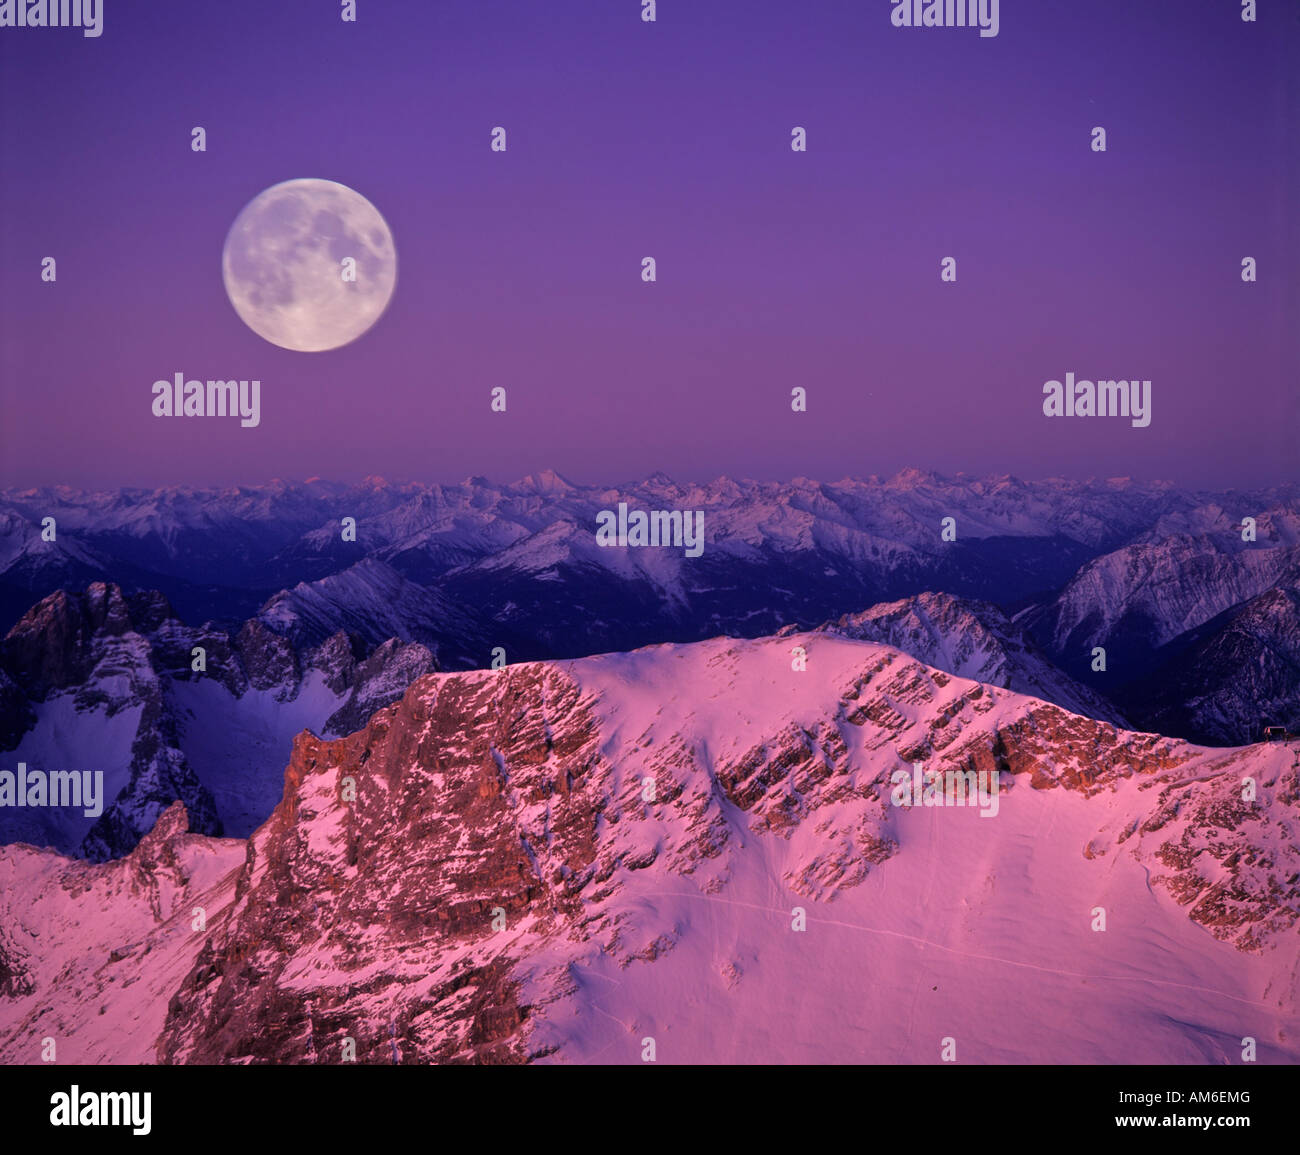 View from Zugspitze, full moon over the Lechtal Alps, dawn, Wettersteingebirge, Tyrol, Austria - Stock Image